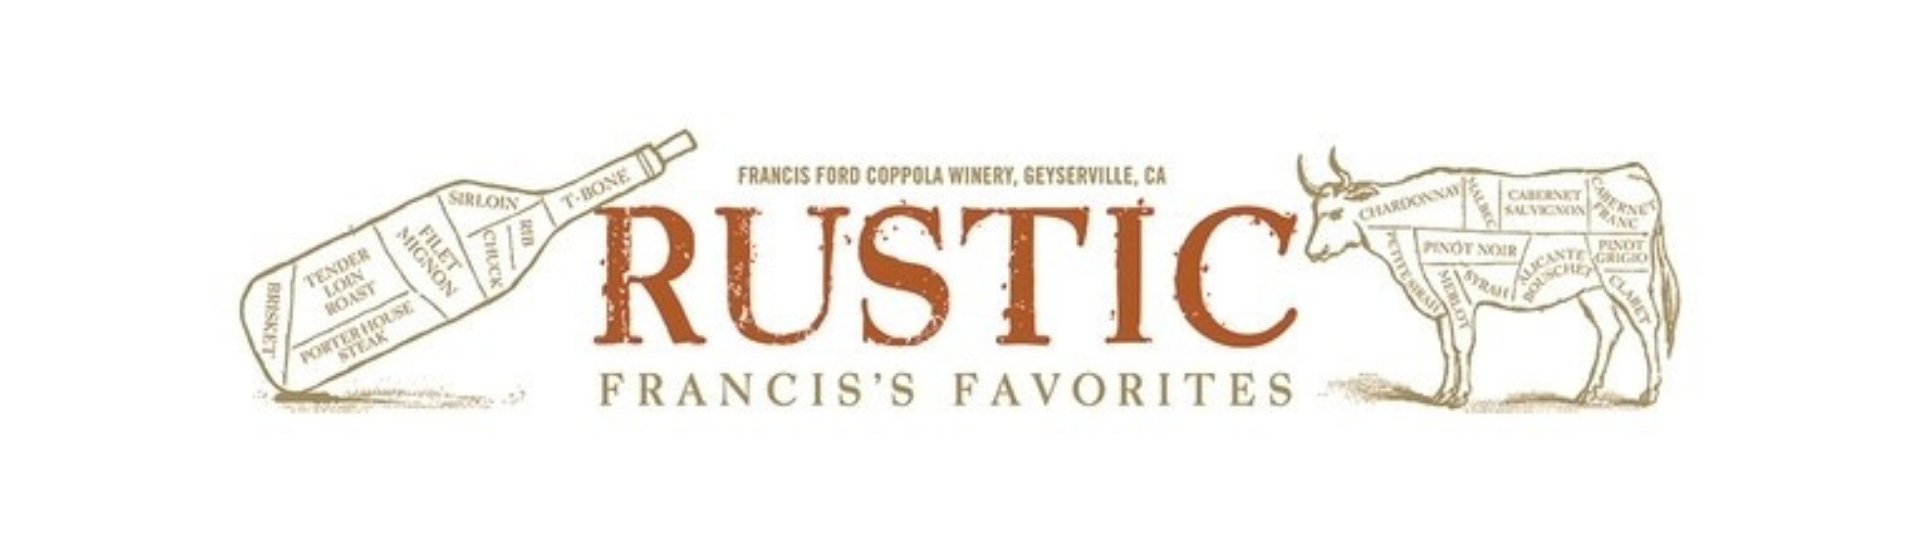 francis ford coppola winery, geyserville, ca, rustic, Francis's favorites